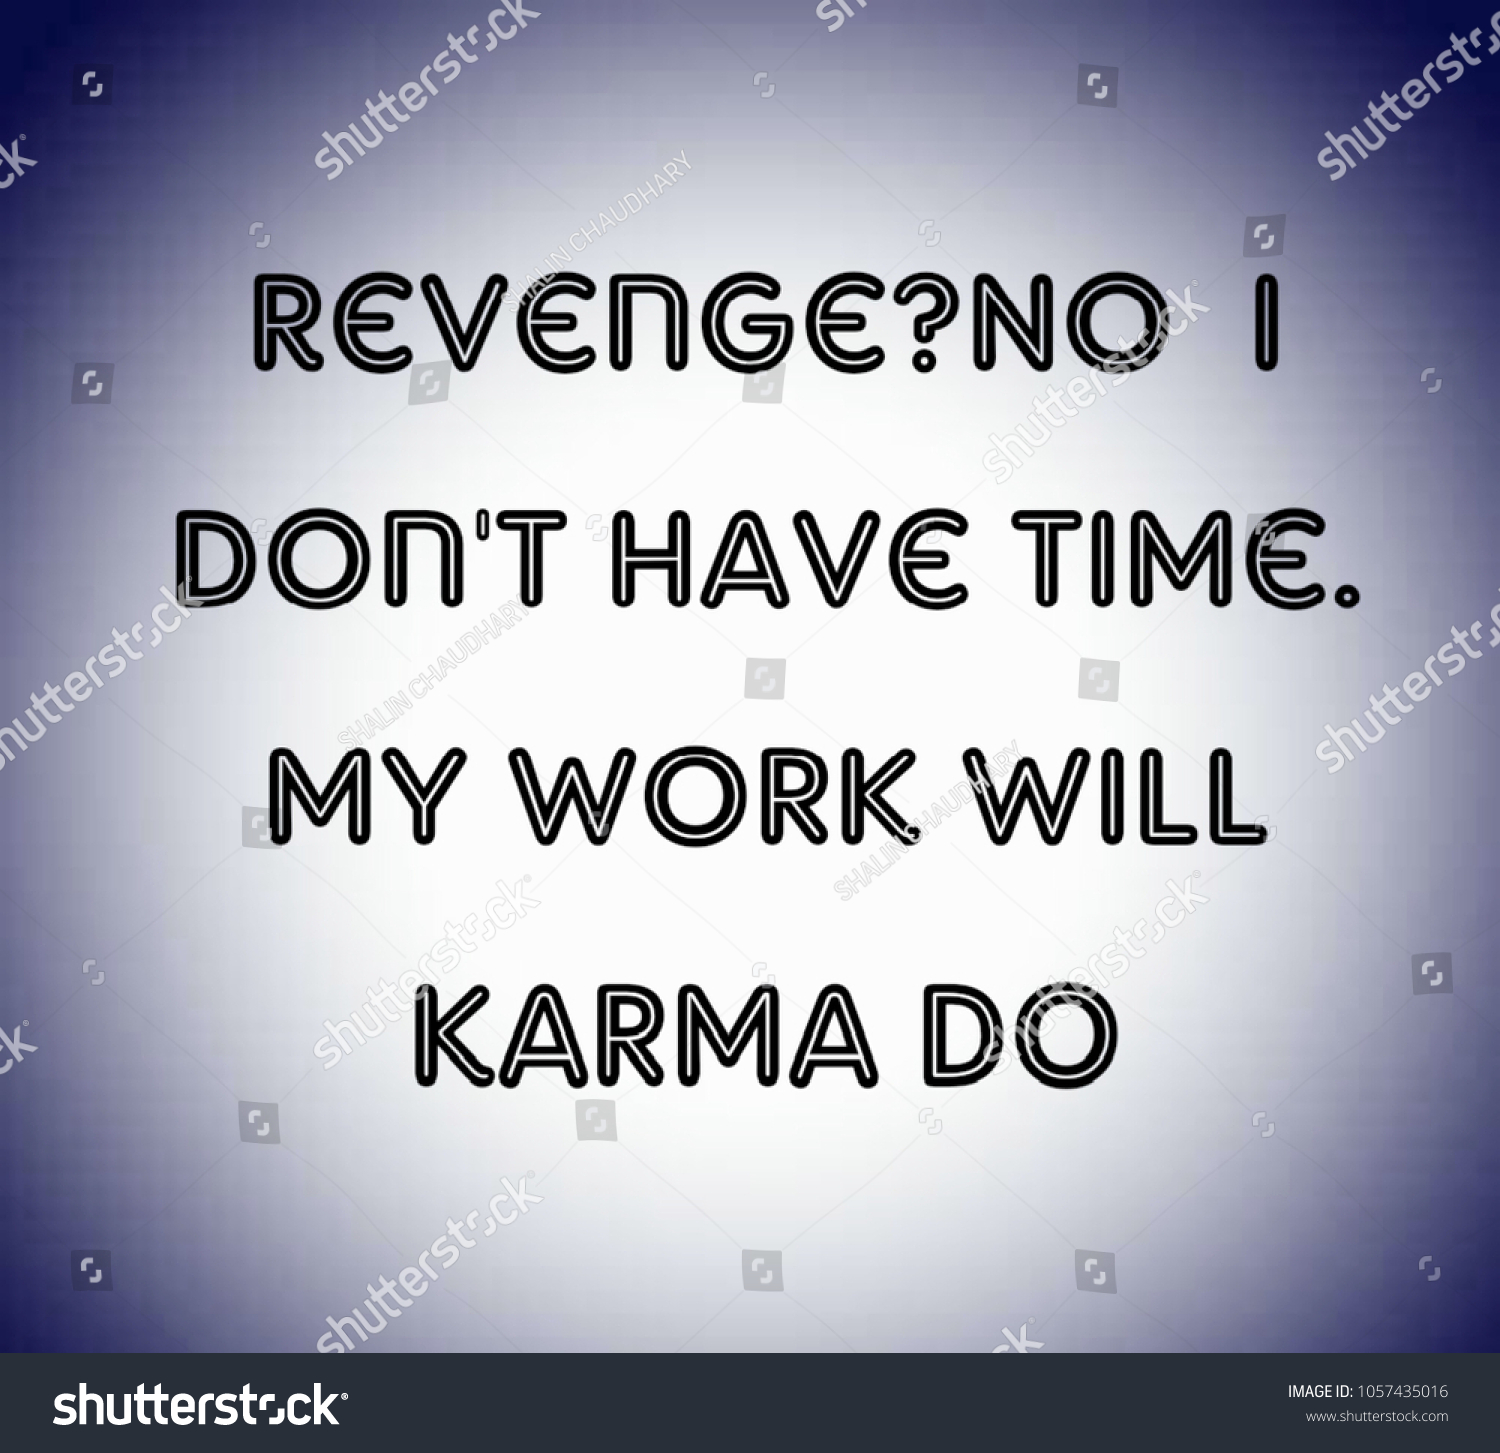 Royalty Free Stock Illustration Of Revenge No L Dont Have Time Stock